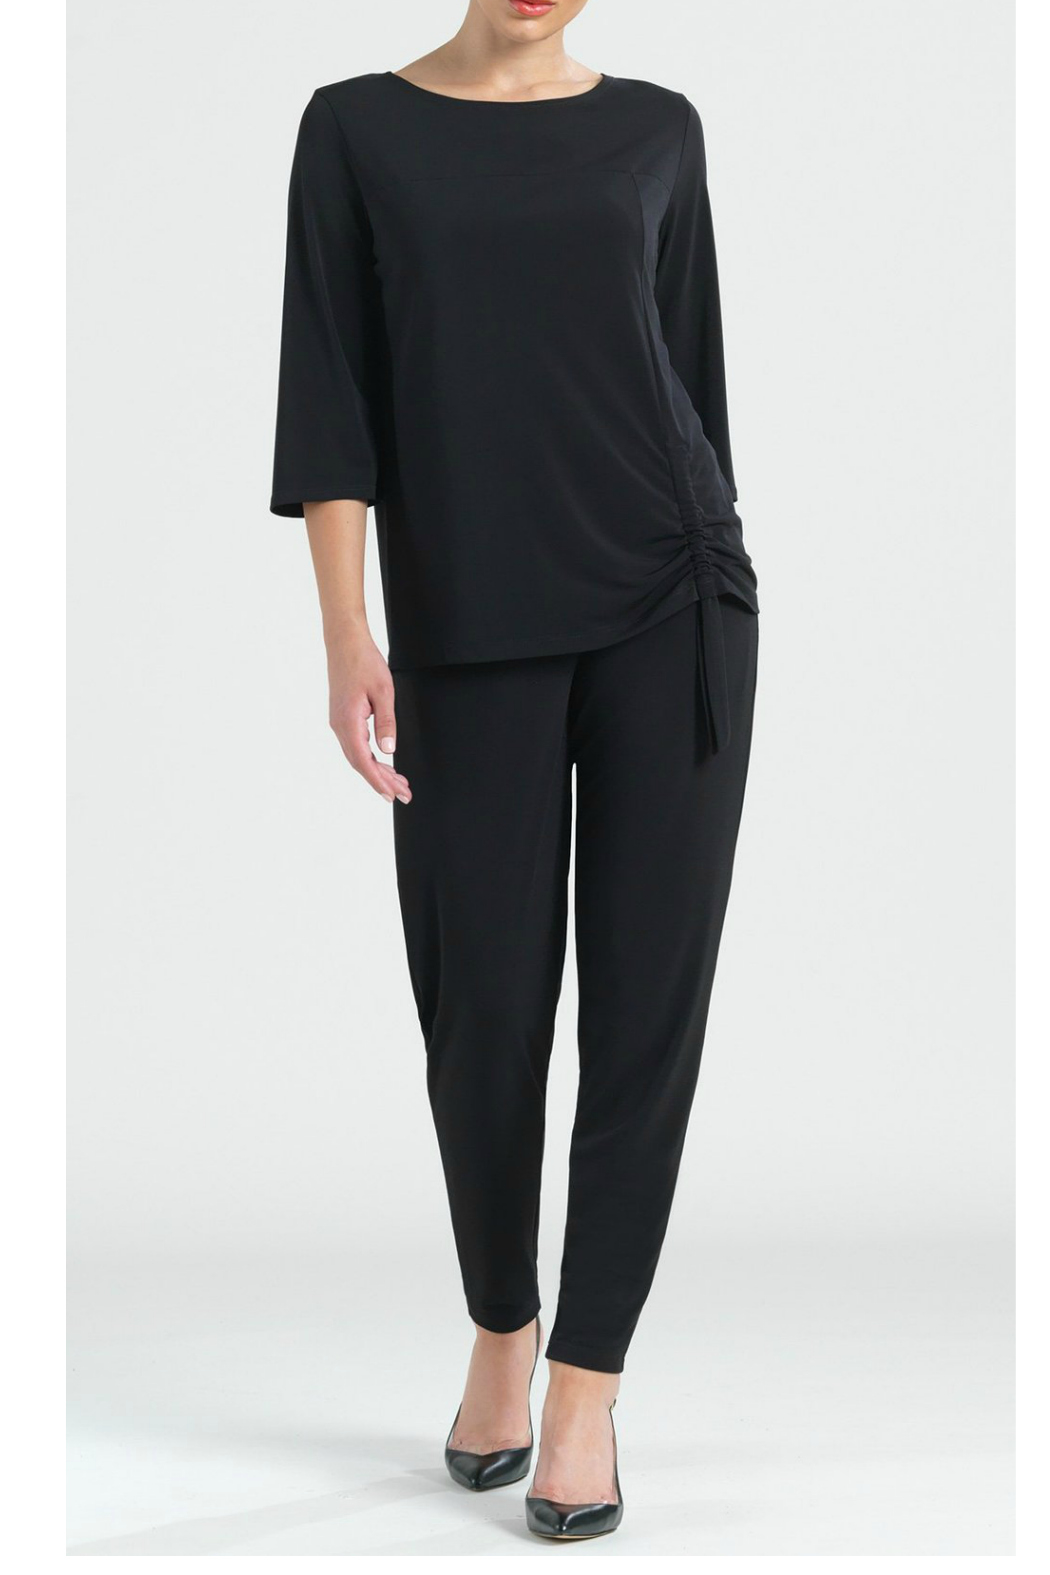 Clara Sunwoo Solid knit top w/ faux pull-tie detail - Main Image